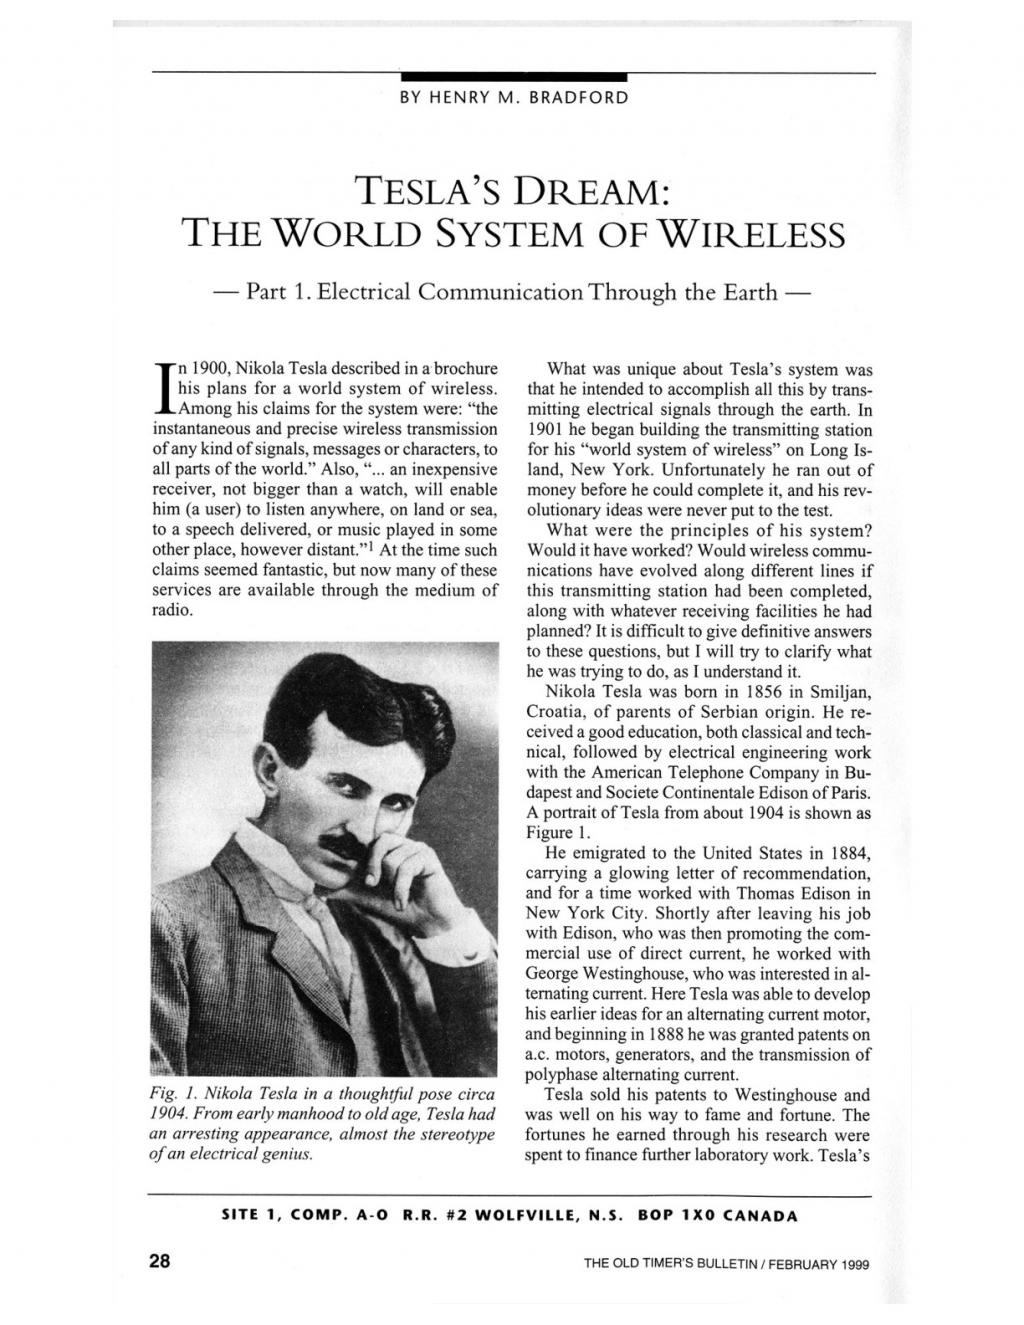 Preview of Tesla's Dream: The World System of Wireless - Part 1 article